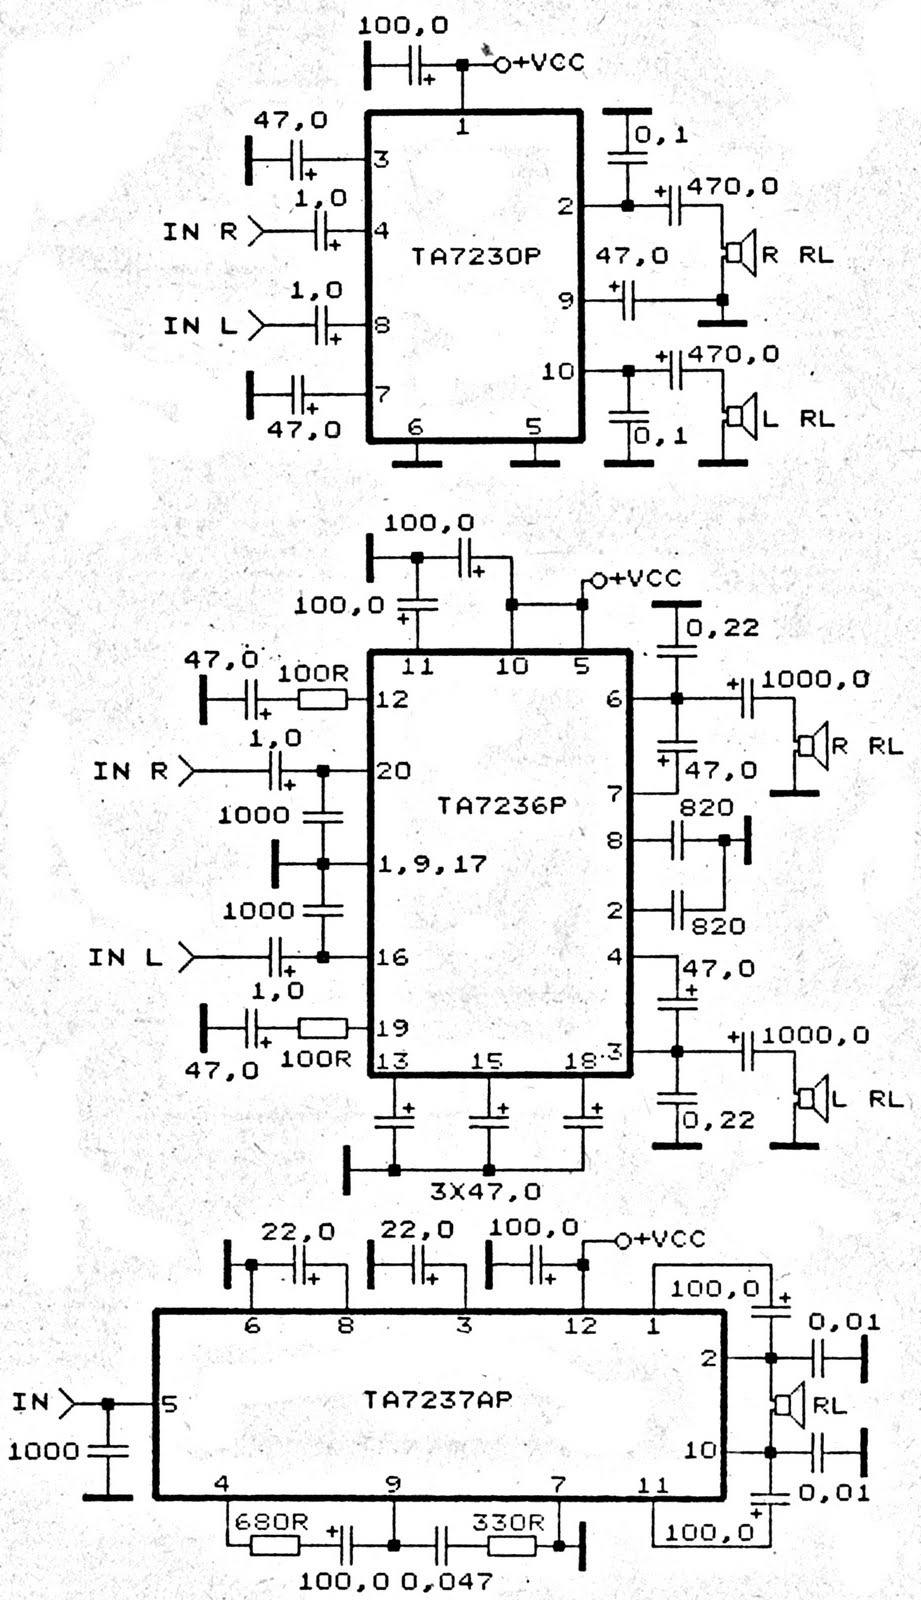 ta7230p ta7236p ta7237ap amplifier schematic